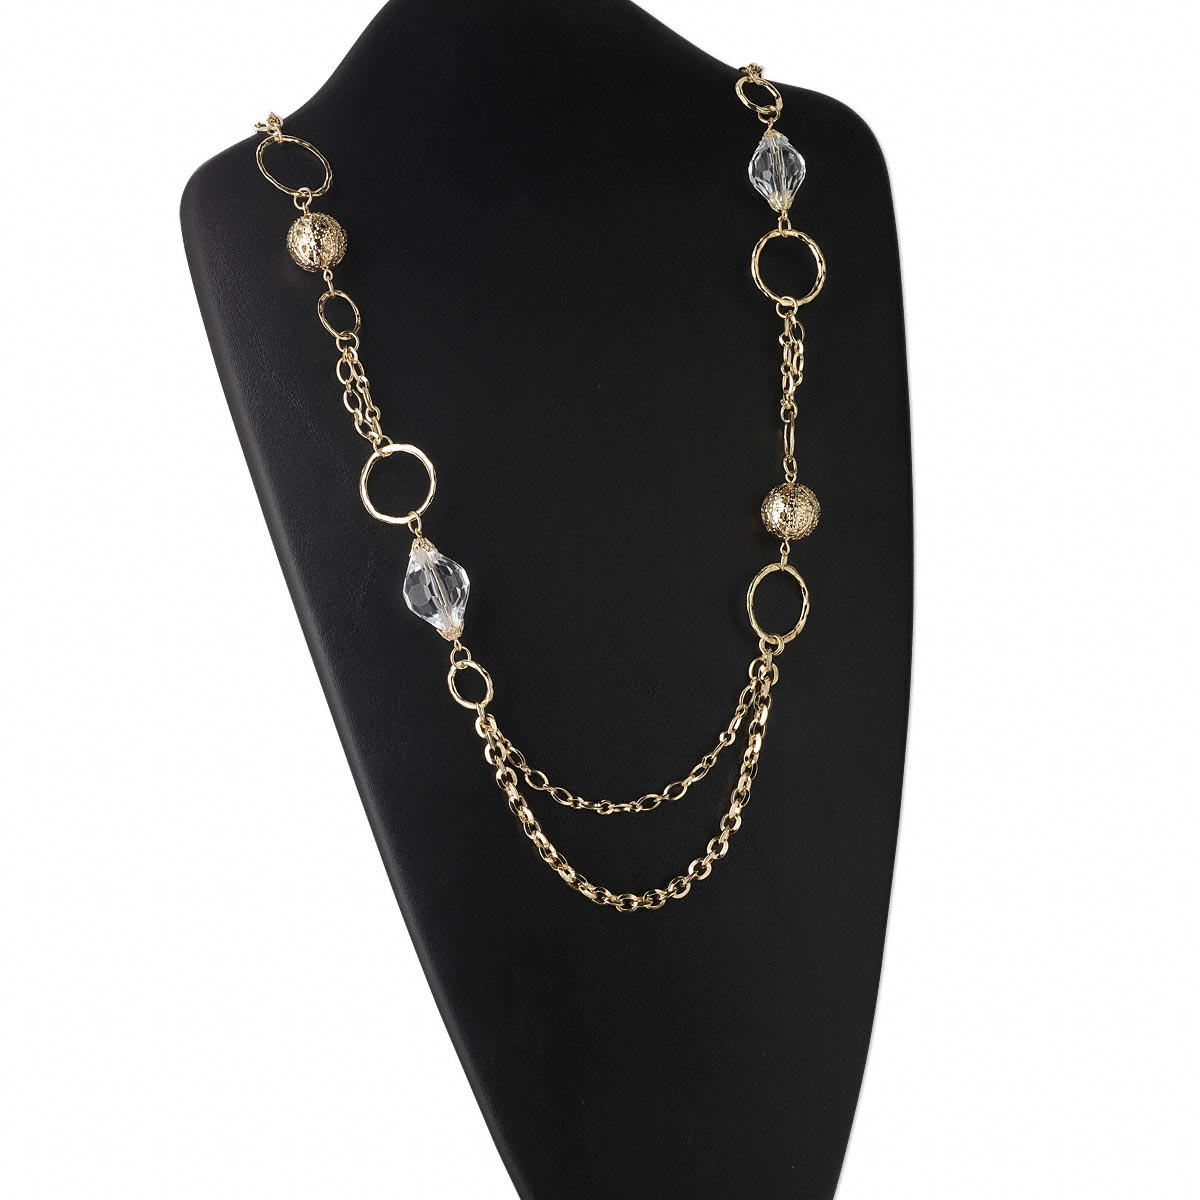 Necklace, 2-strand, gold-finished steel and acrylic, clear, 22mm